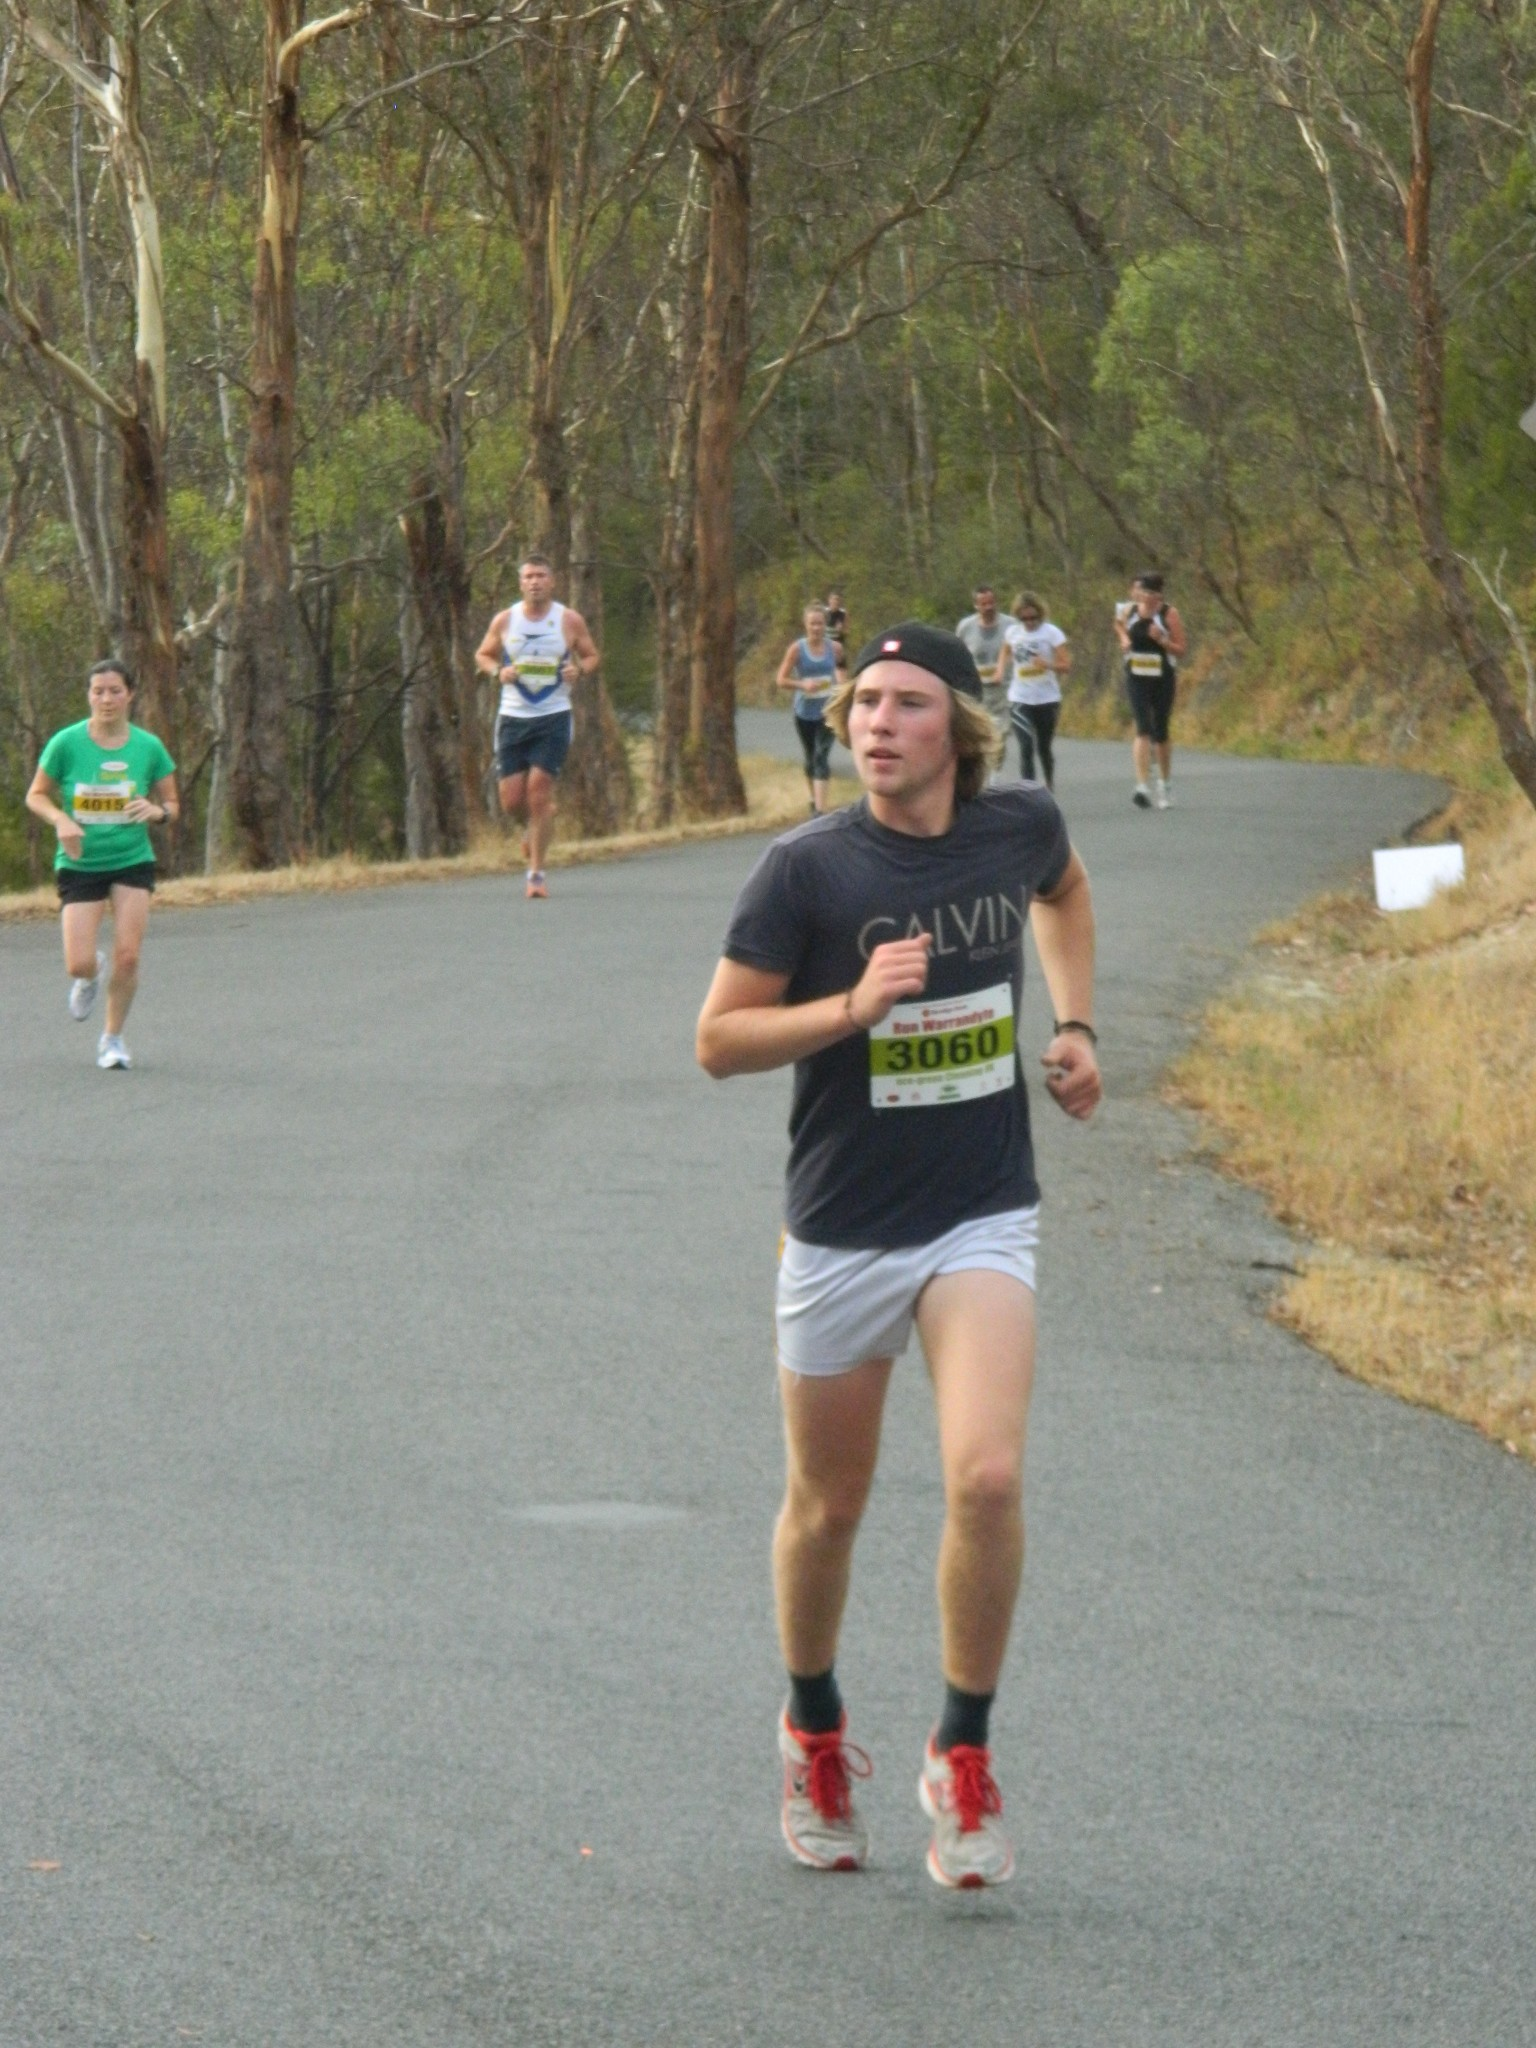 Run Warrandyte 2013 Results